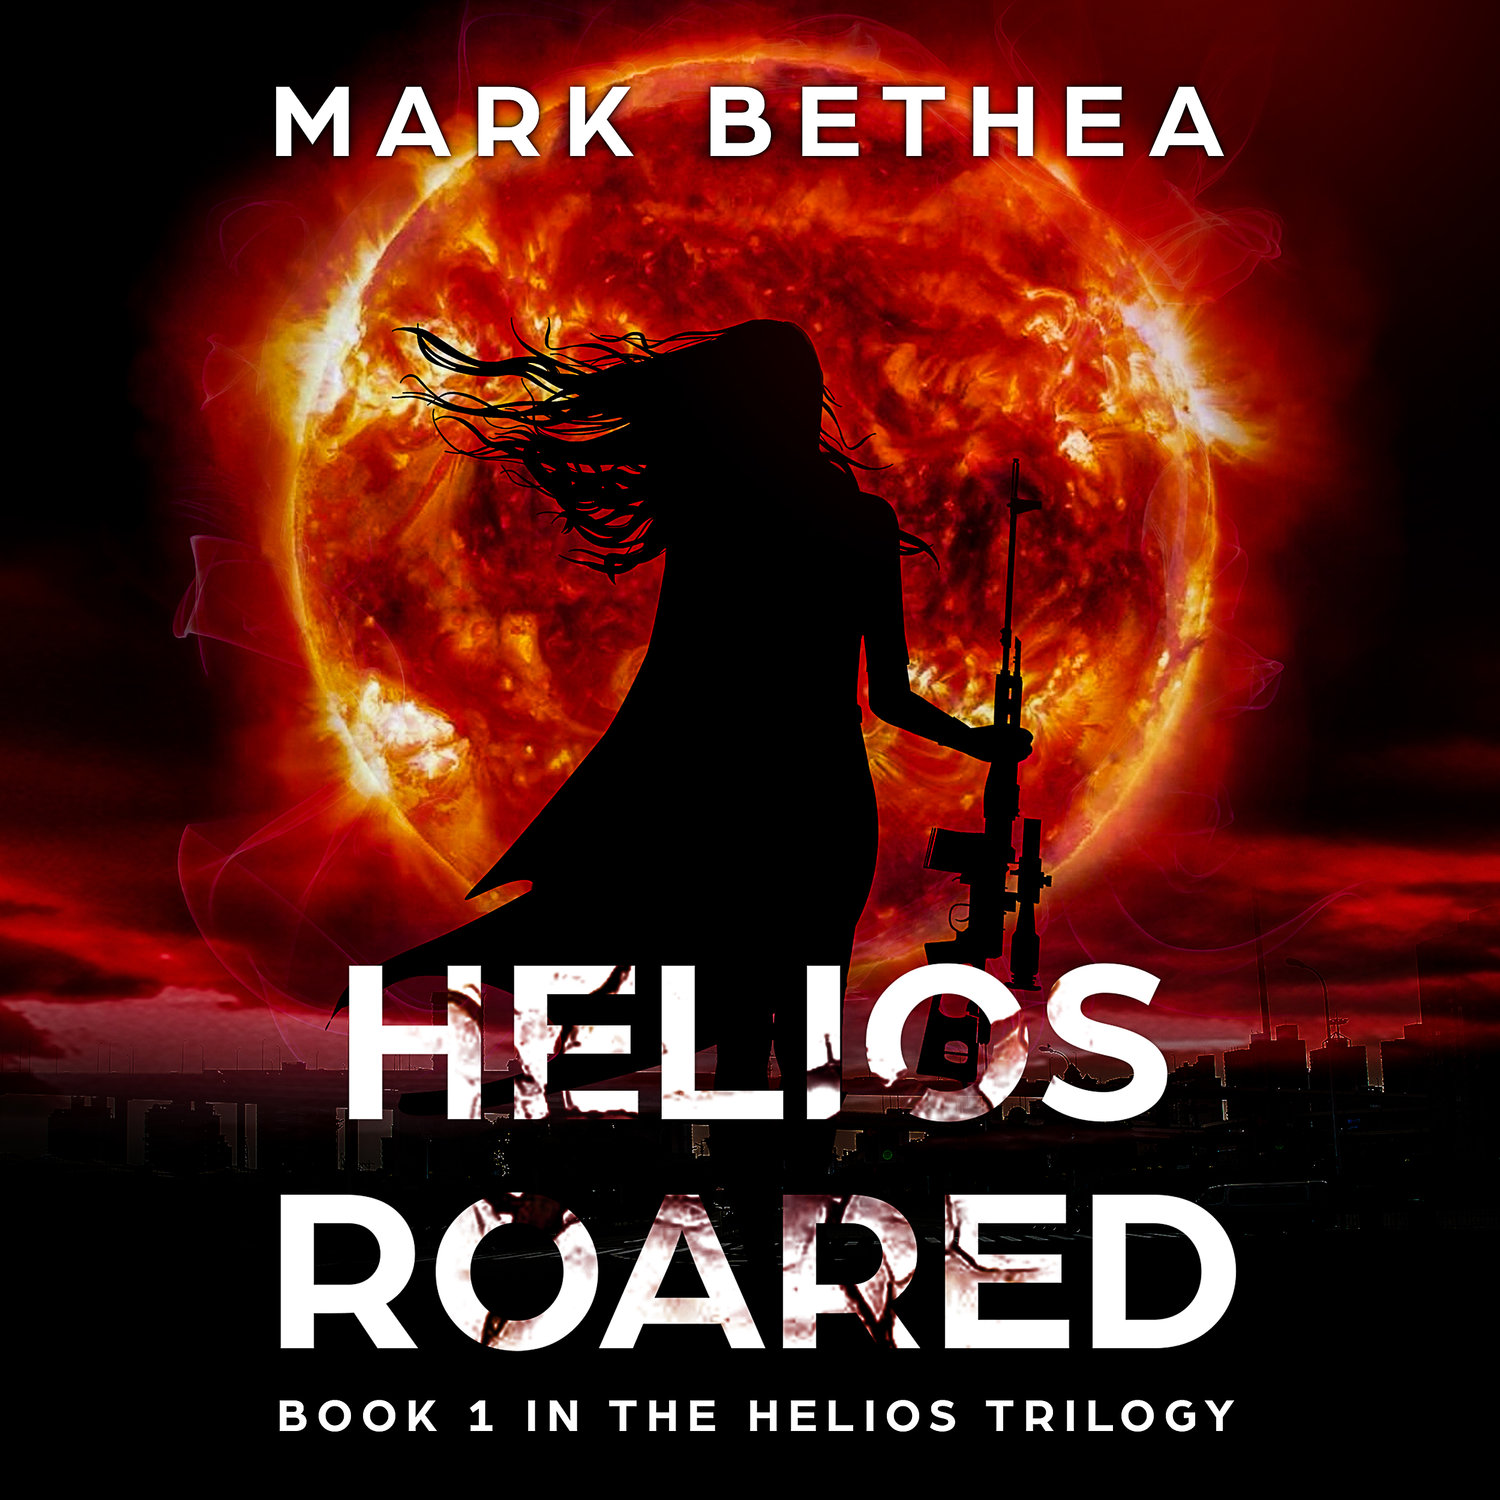 Helios Roared - A Novel